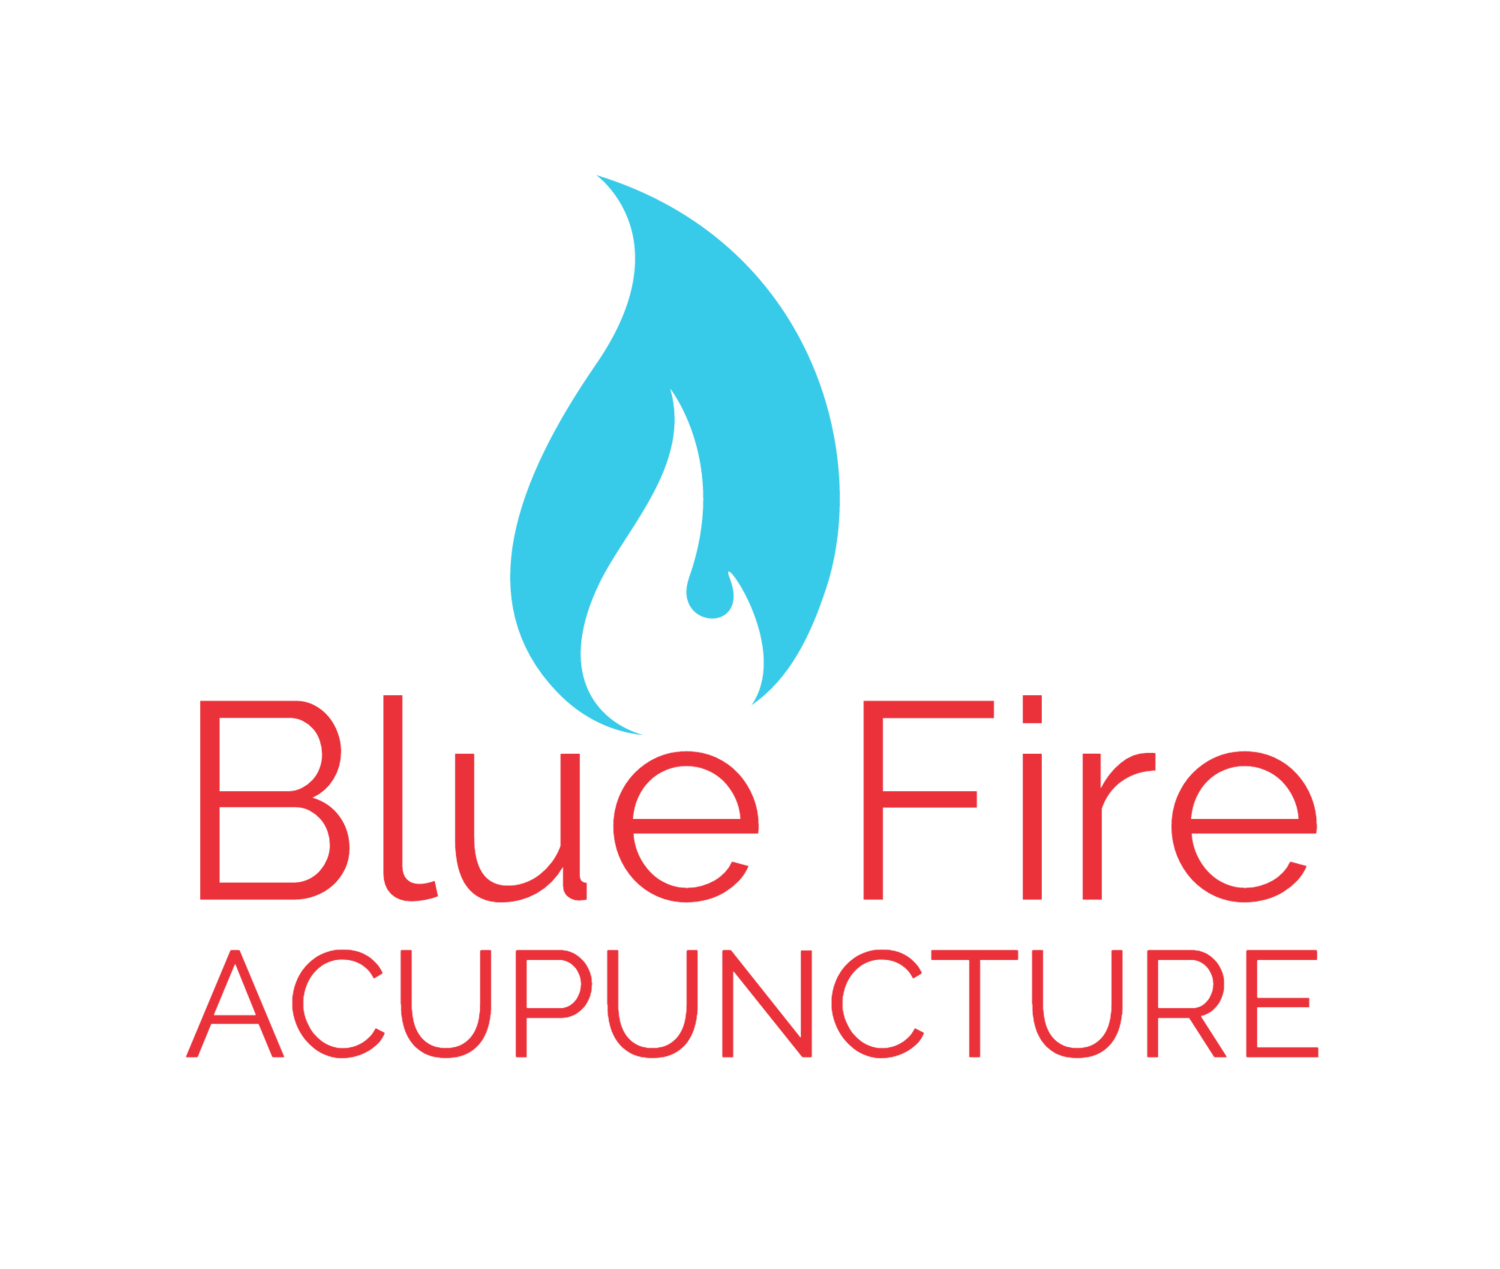 Blue Fire Acupuncture